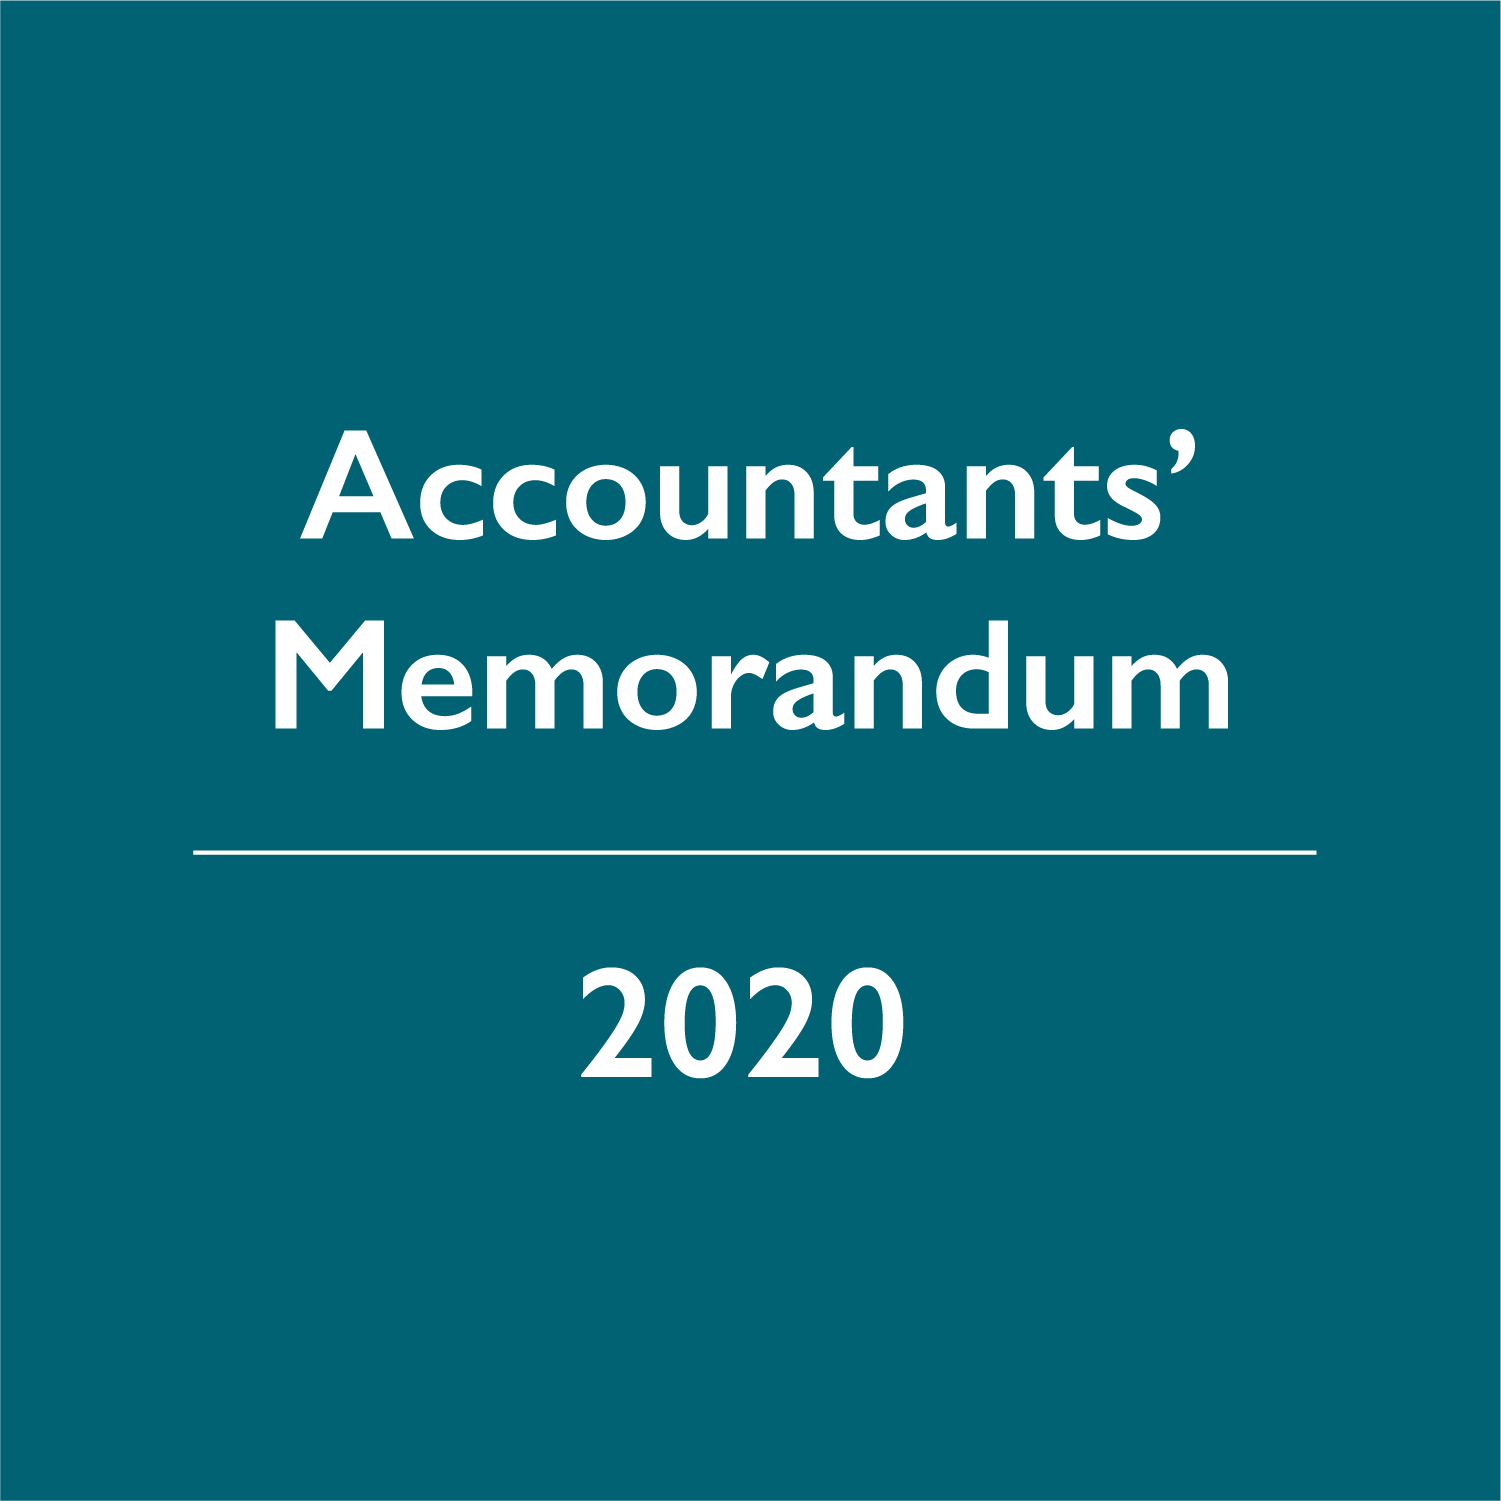 2020 Accountants' Memorandum